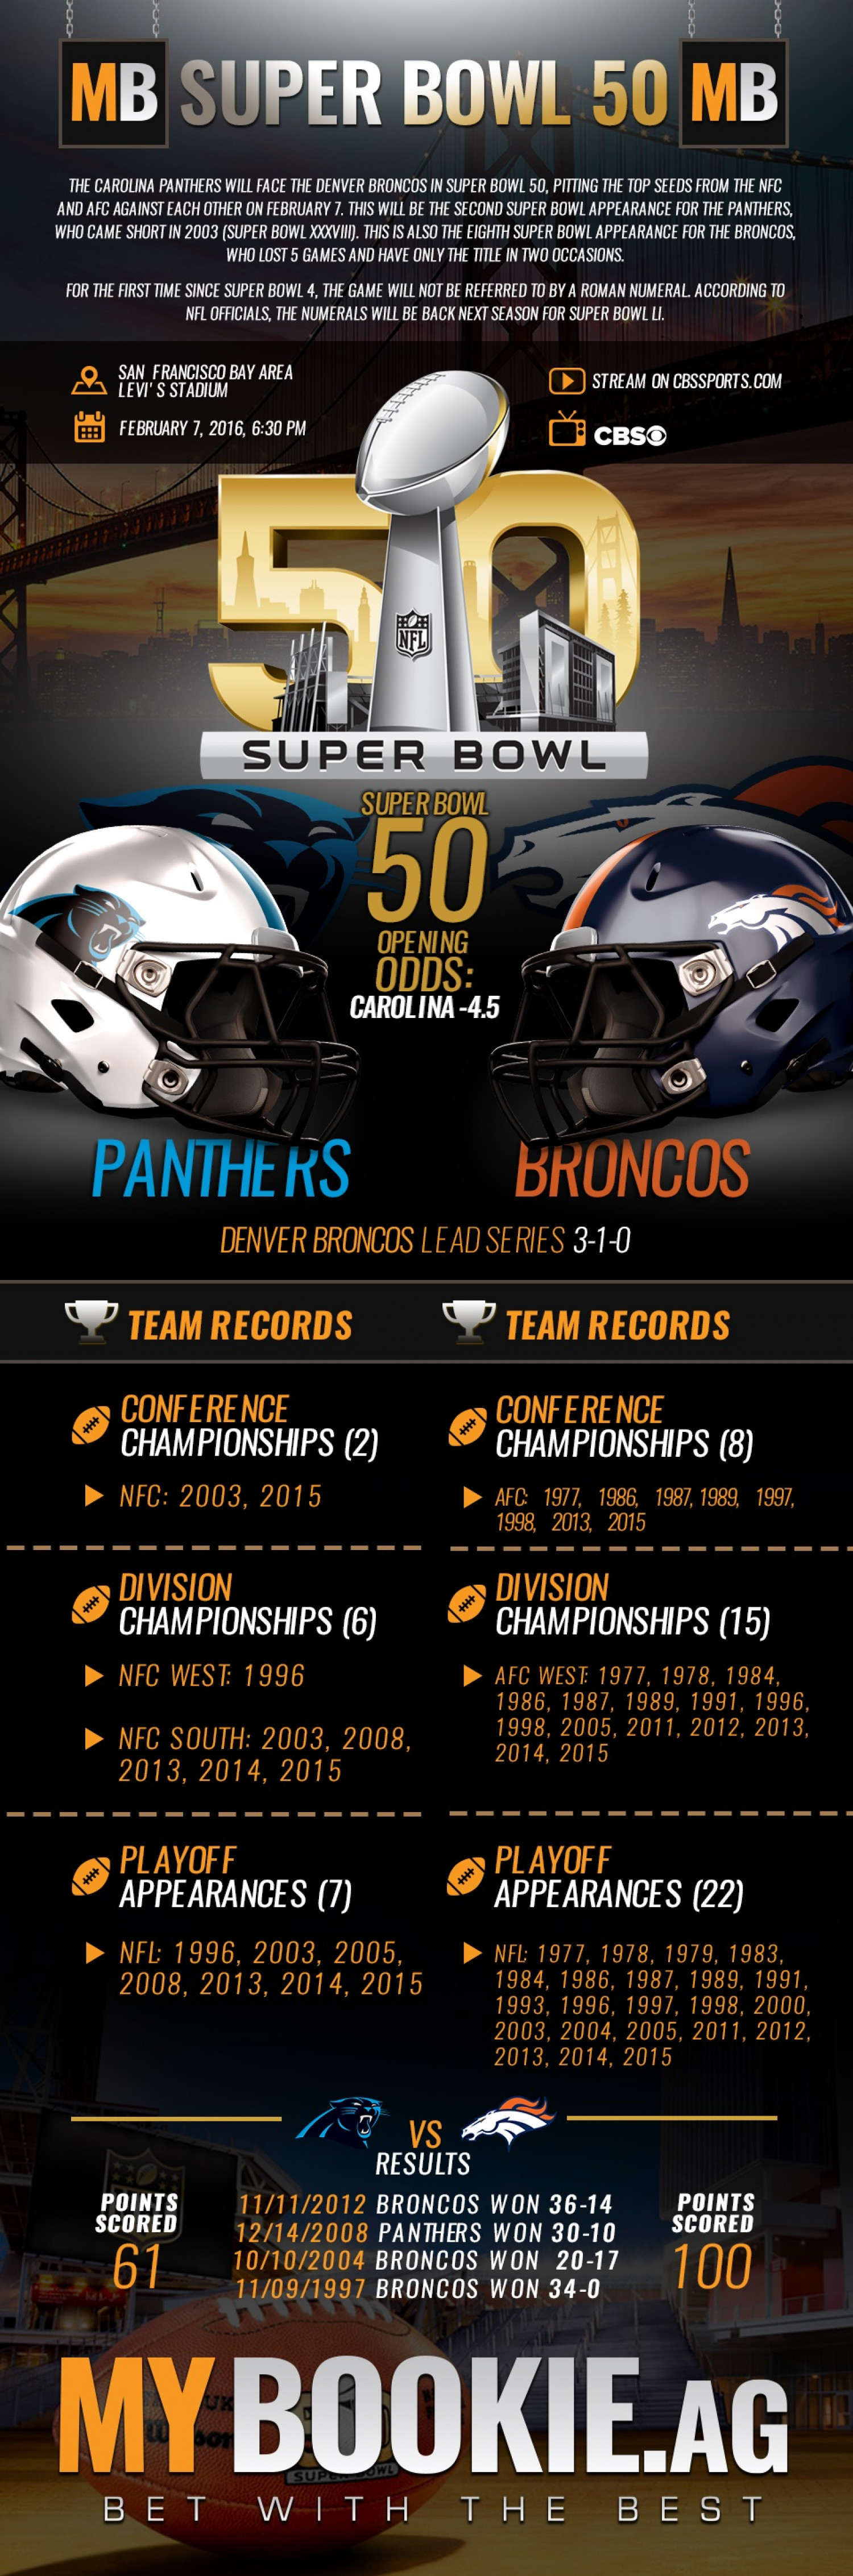 SUPER BOWL 50 BETTING GUIDE Infographic